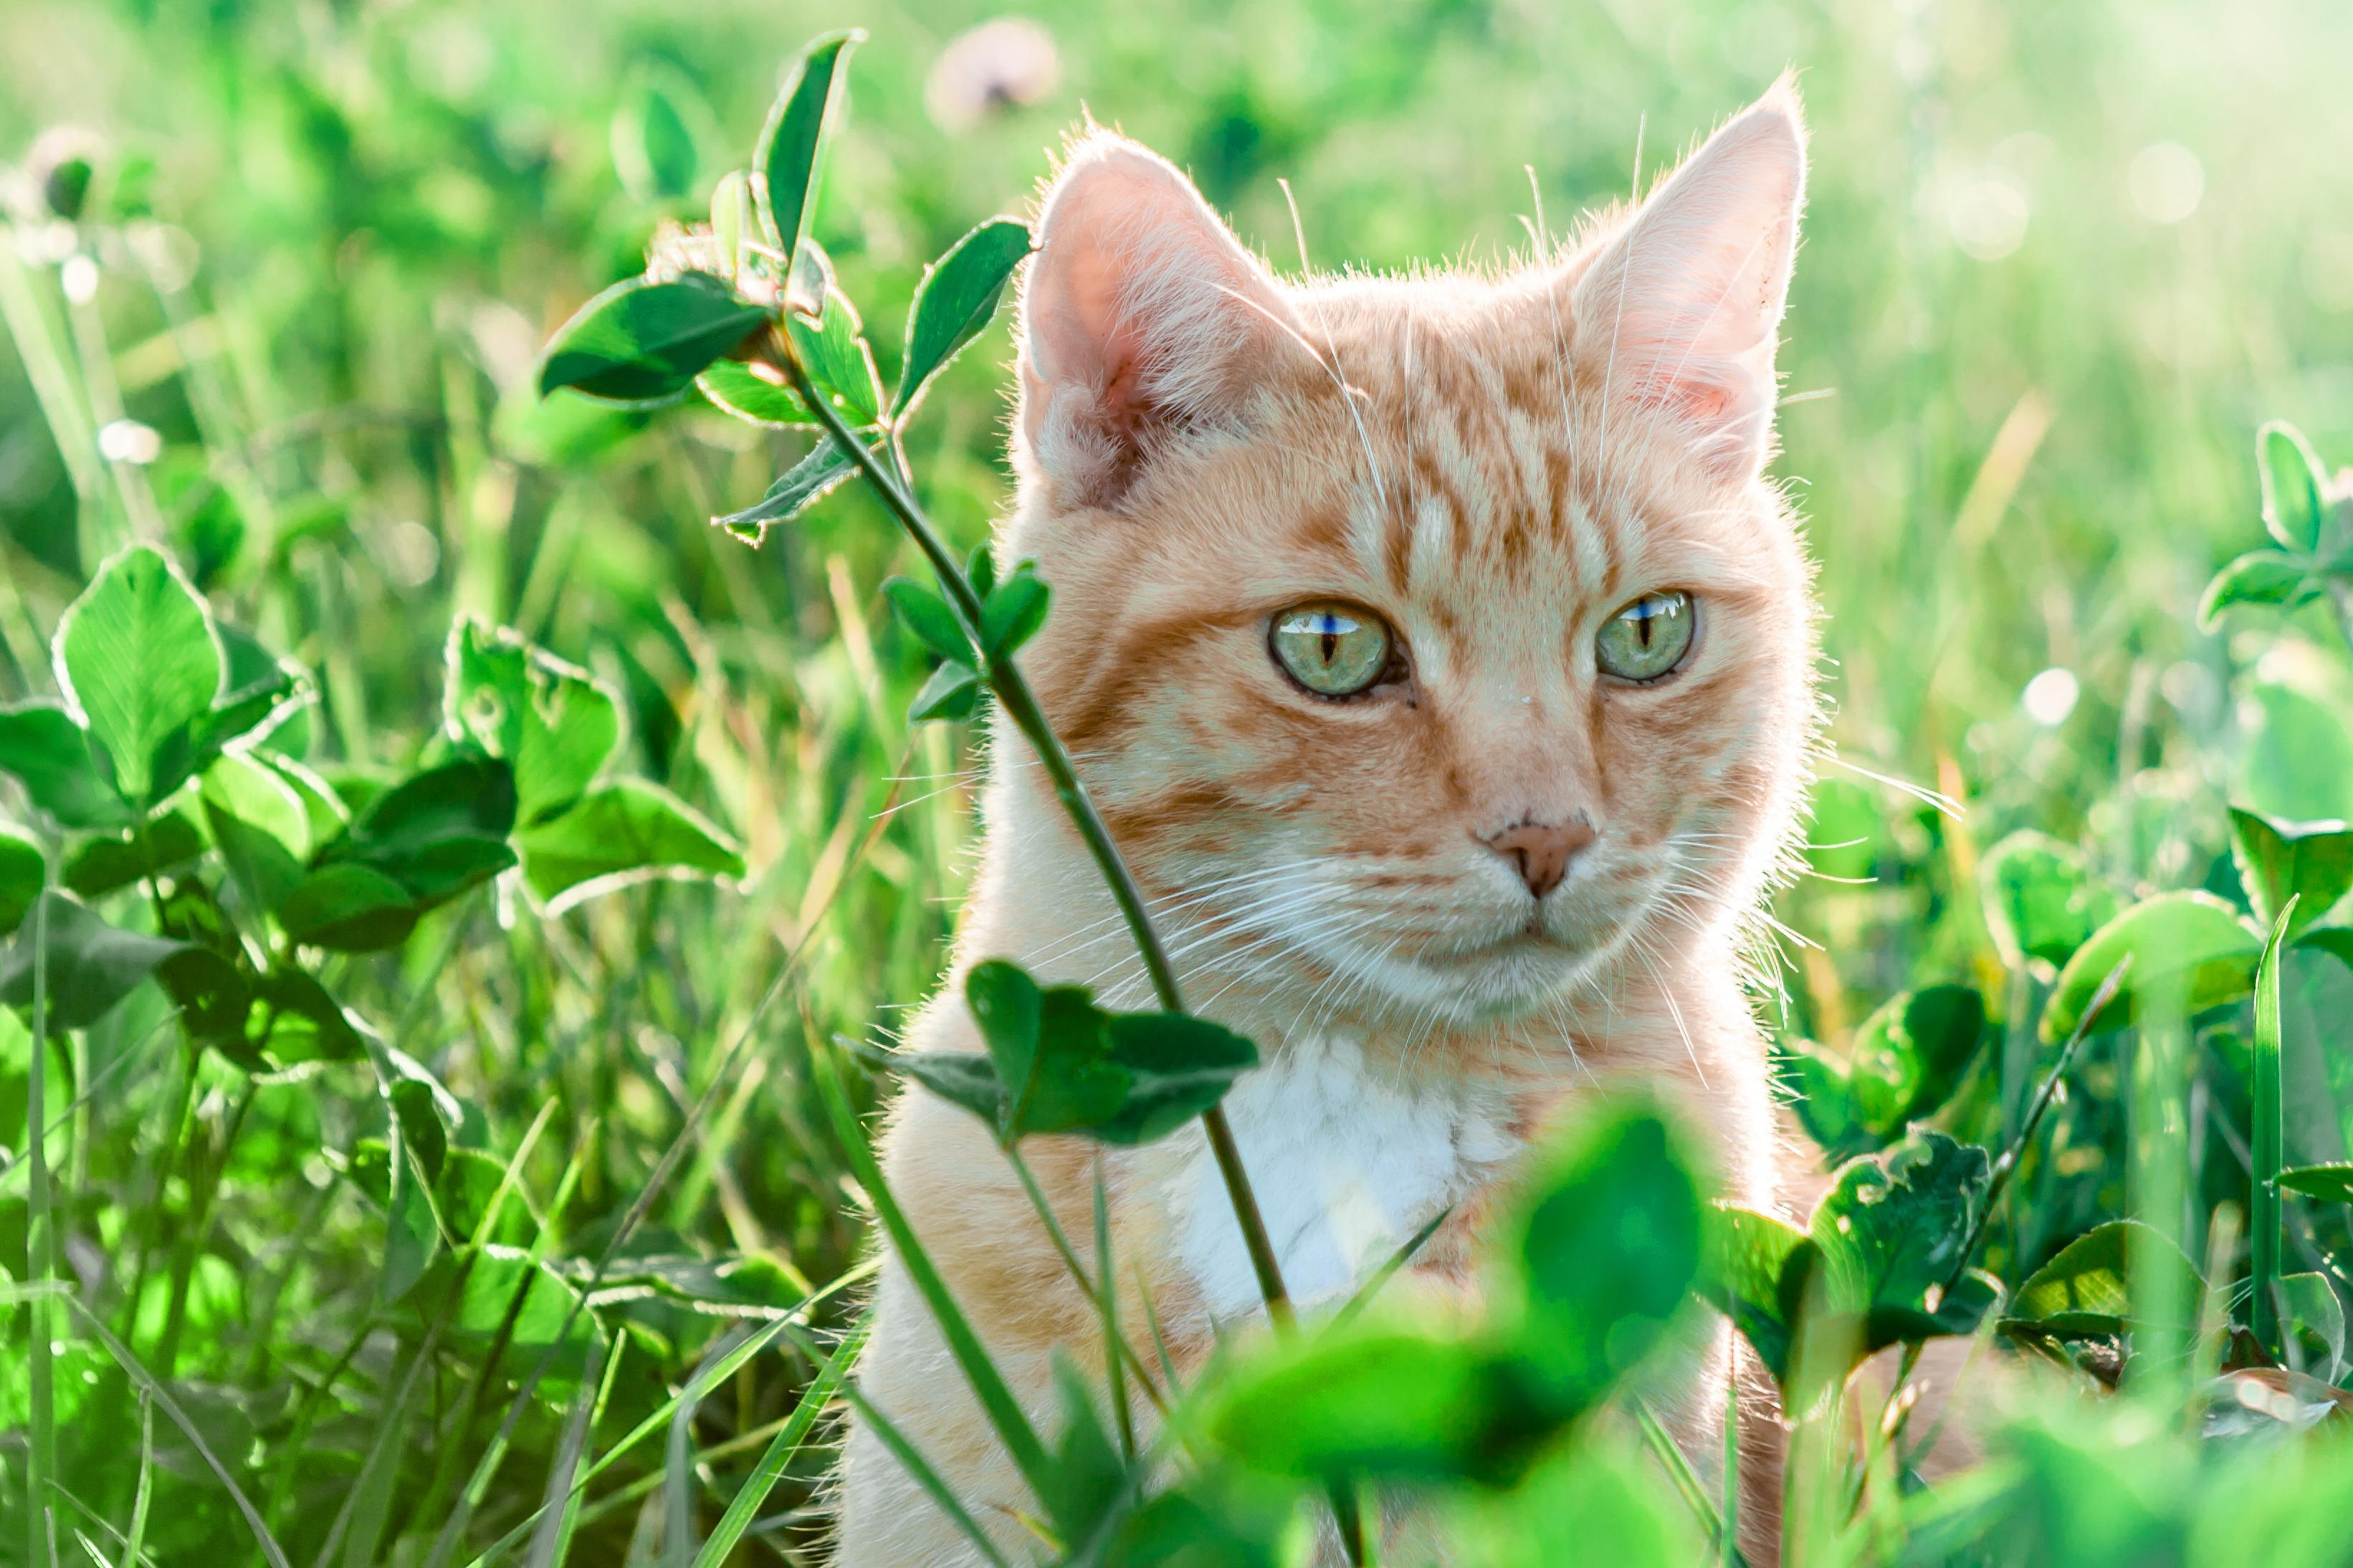 Free picture nature green grass yellow cat landscape